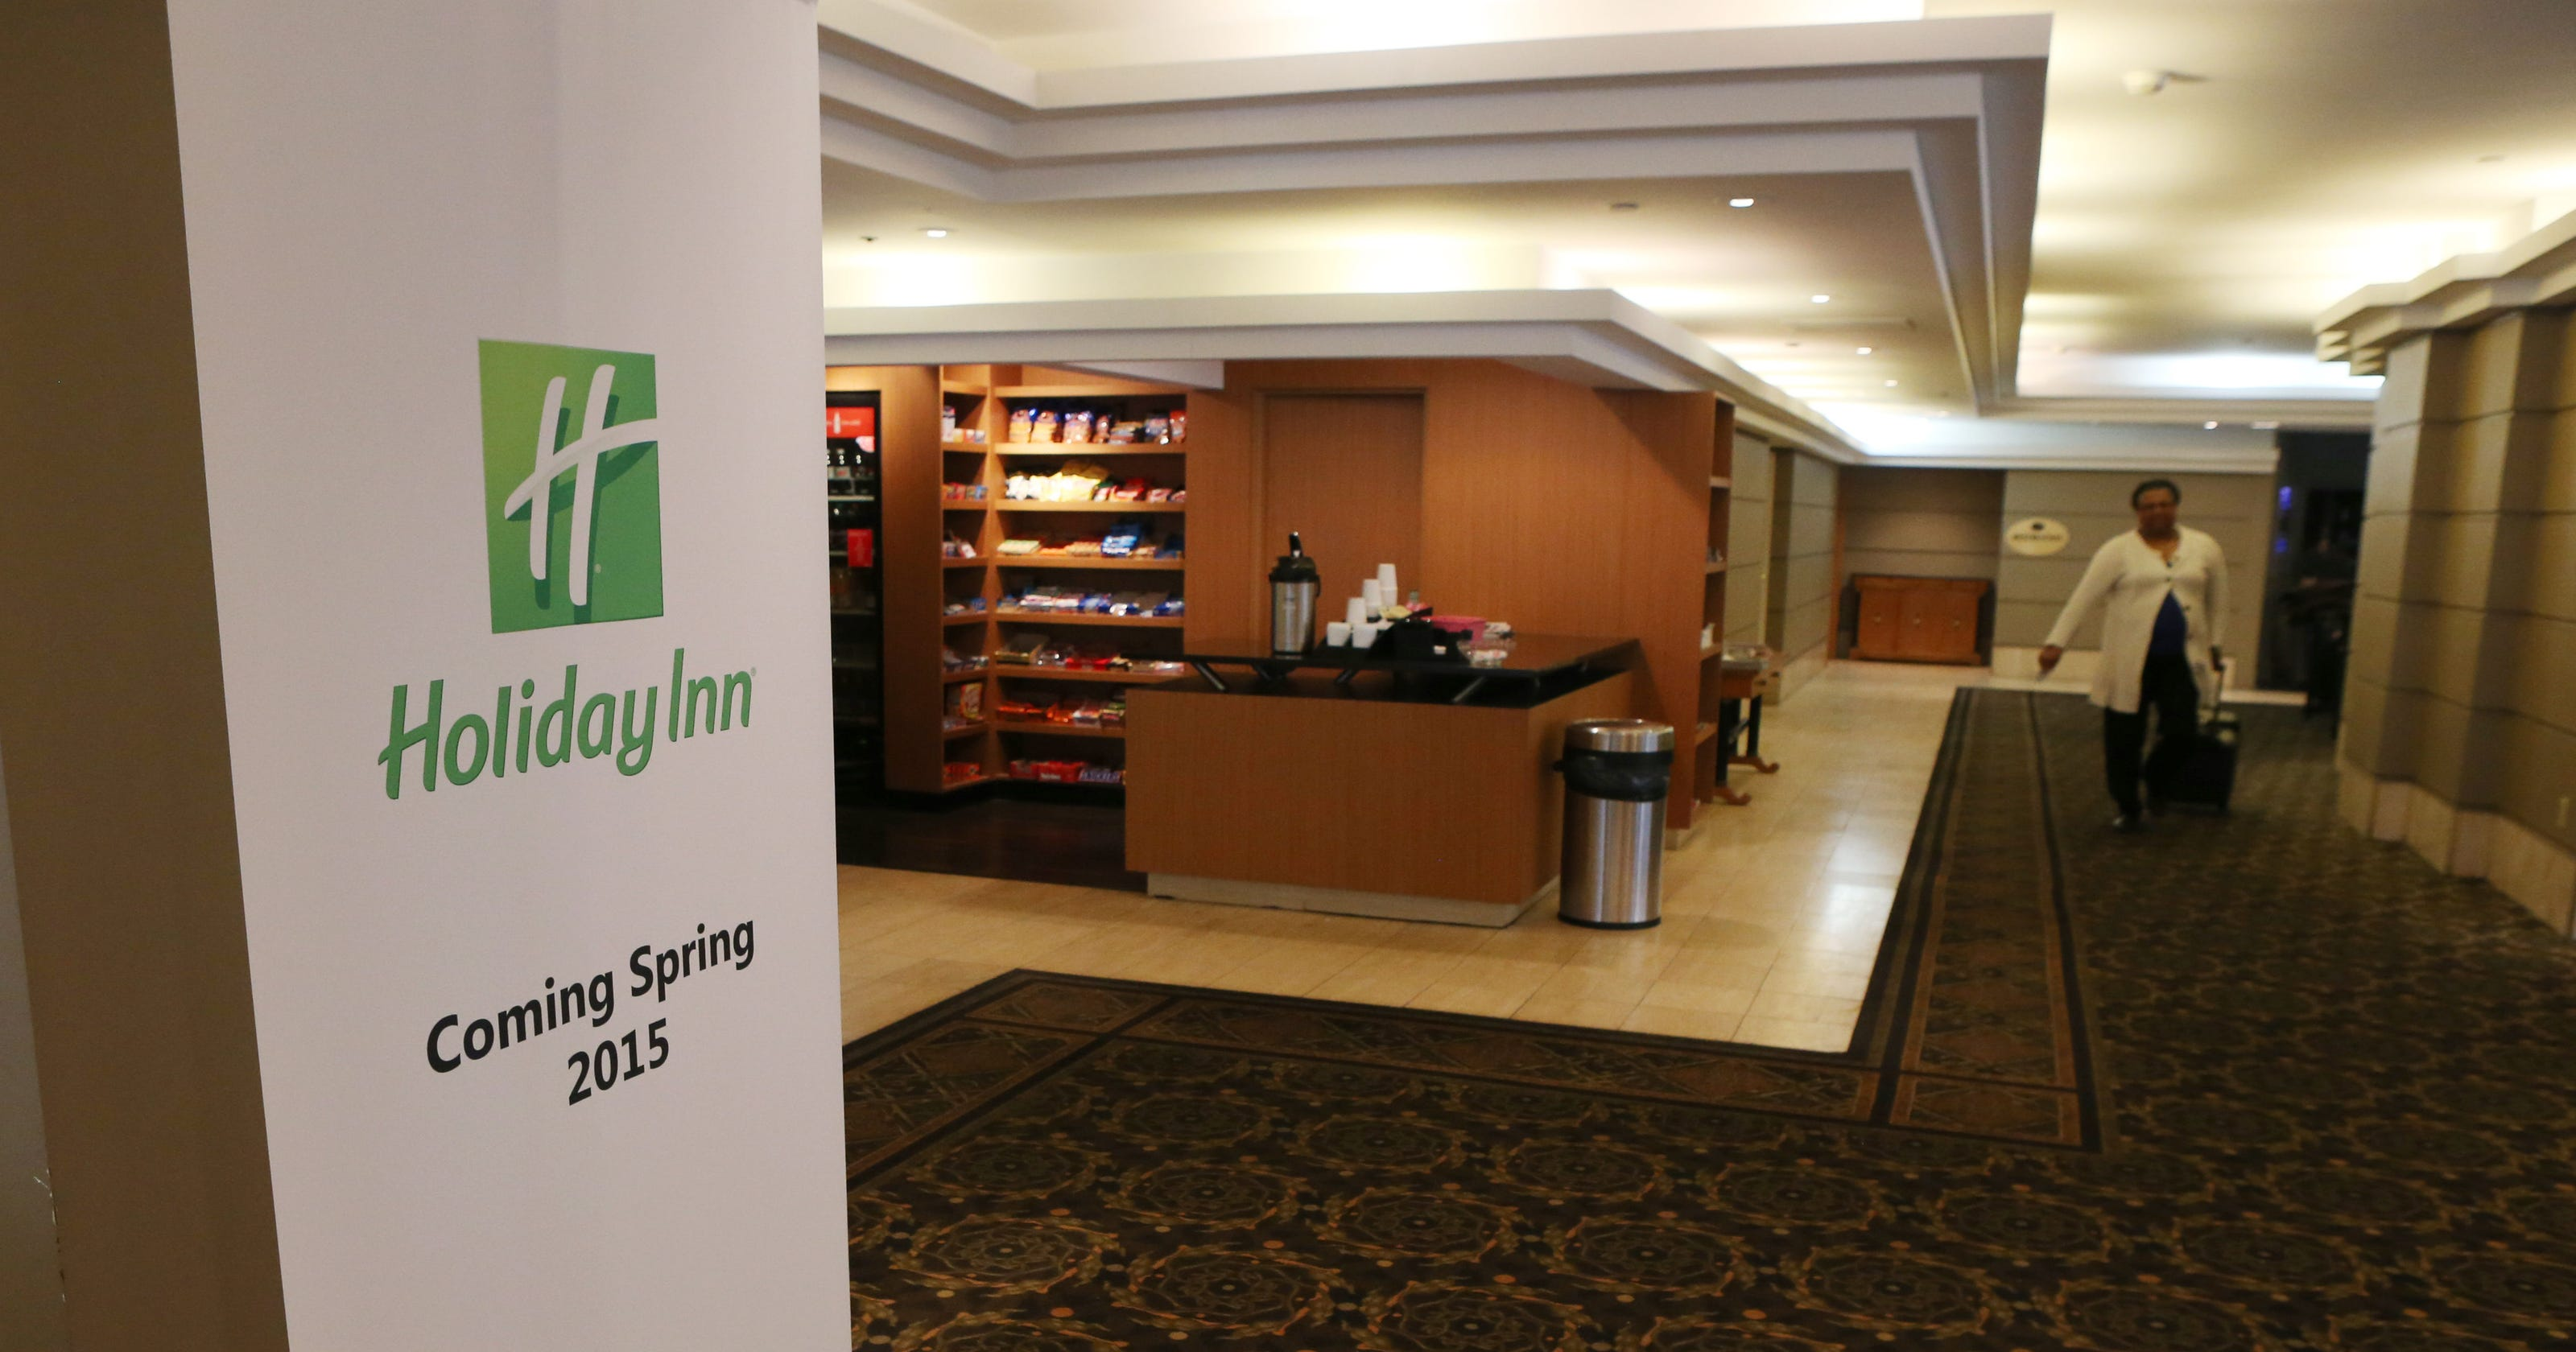 Rochester Plaza will transform into Holiday Inn franchise